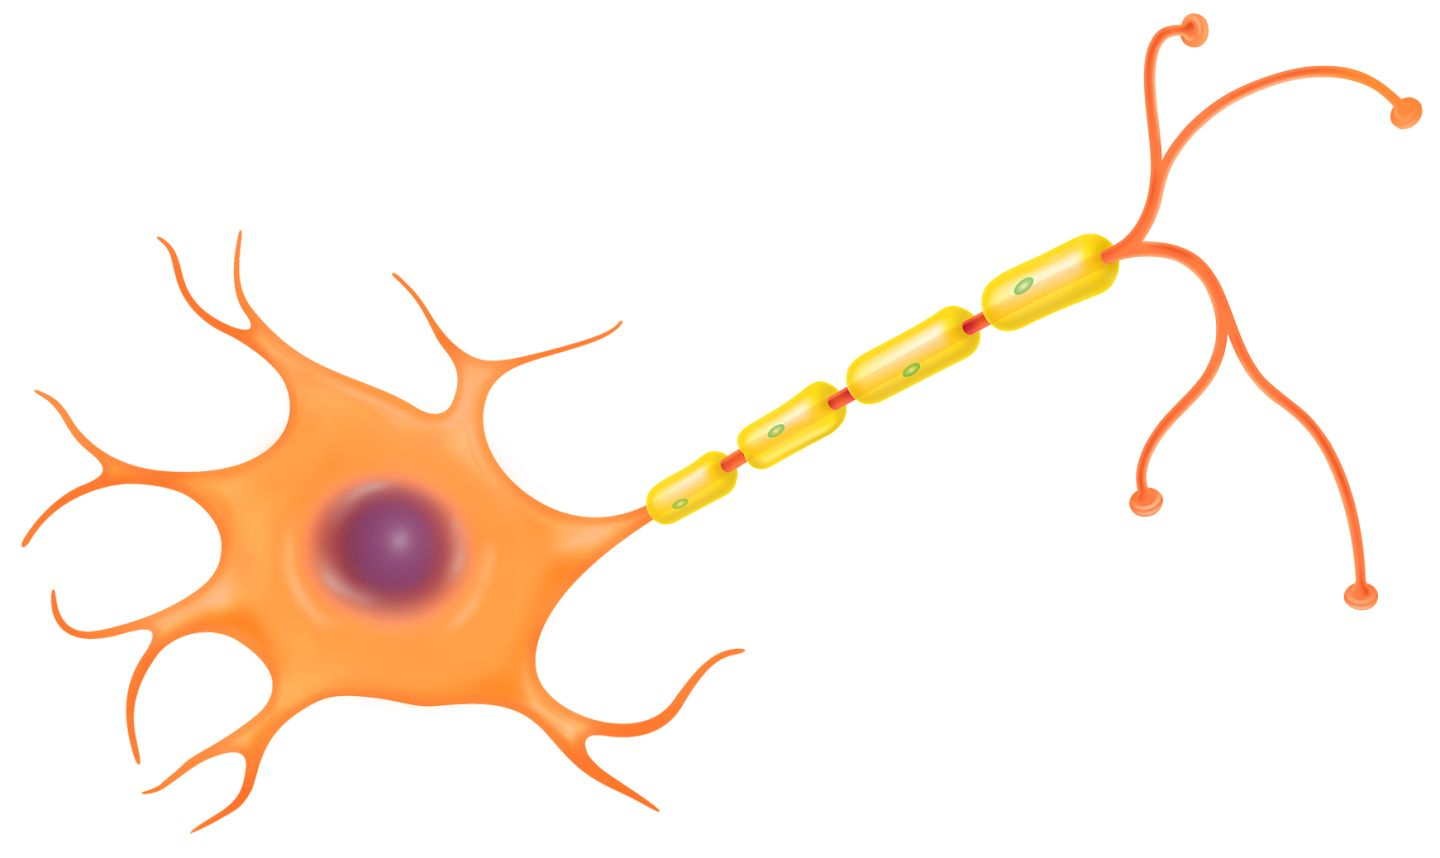 the nerve cell is a part of the nervous system, the nerve